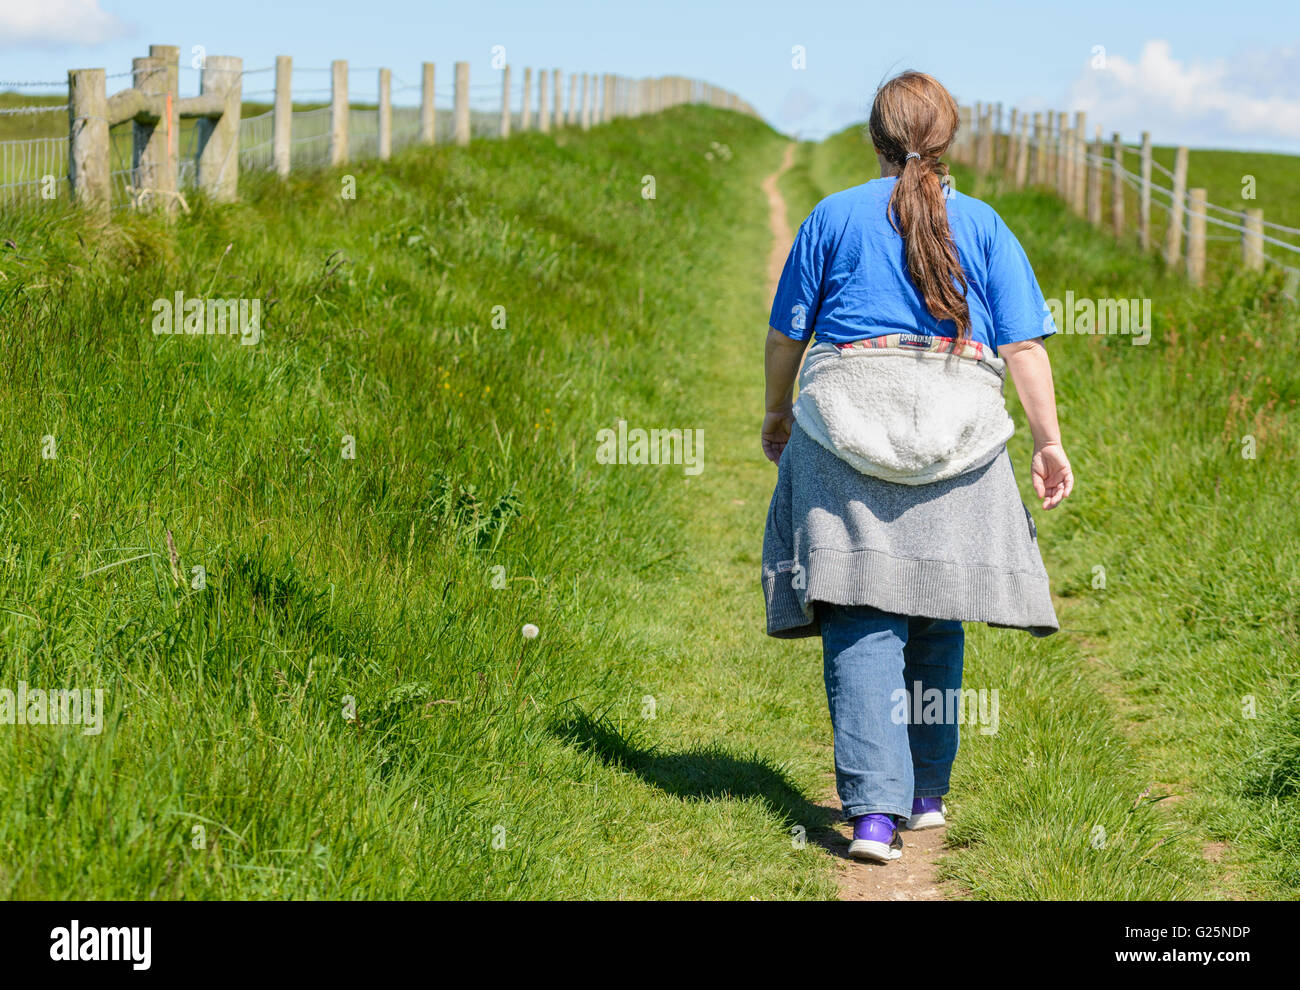 Losing weight. Woman walking away along a country path. Healthy living. Healthy lifestyle. Getting fitter. Keeping - Stock Image